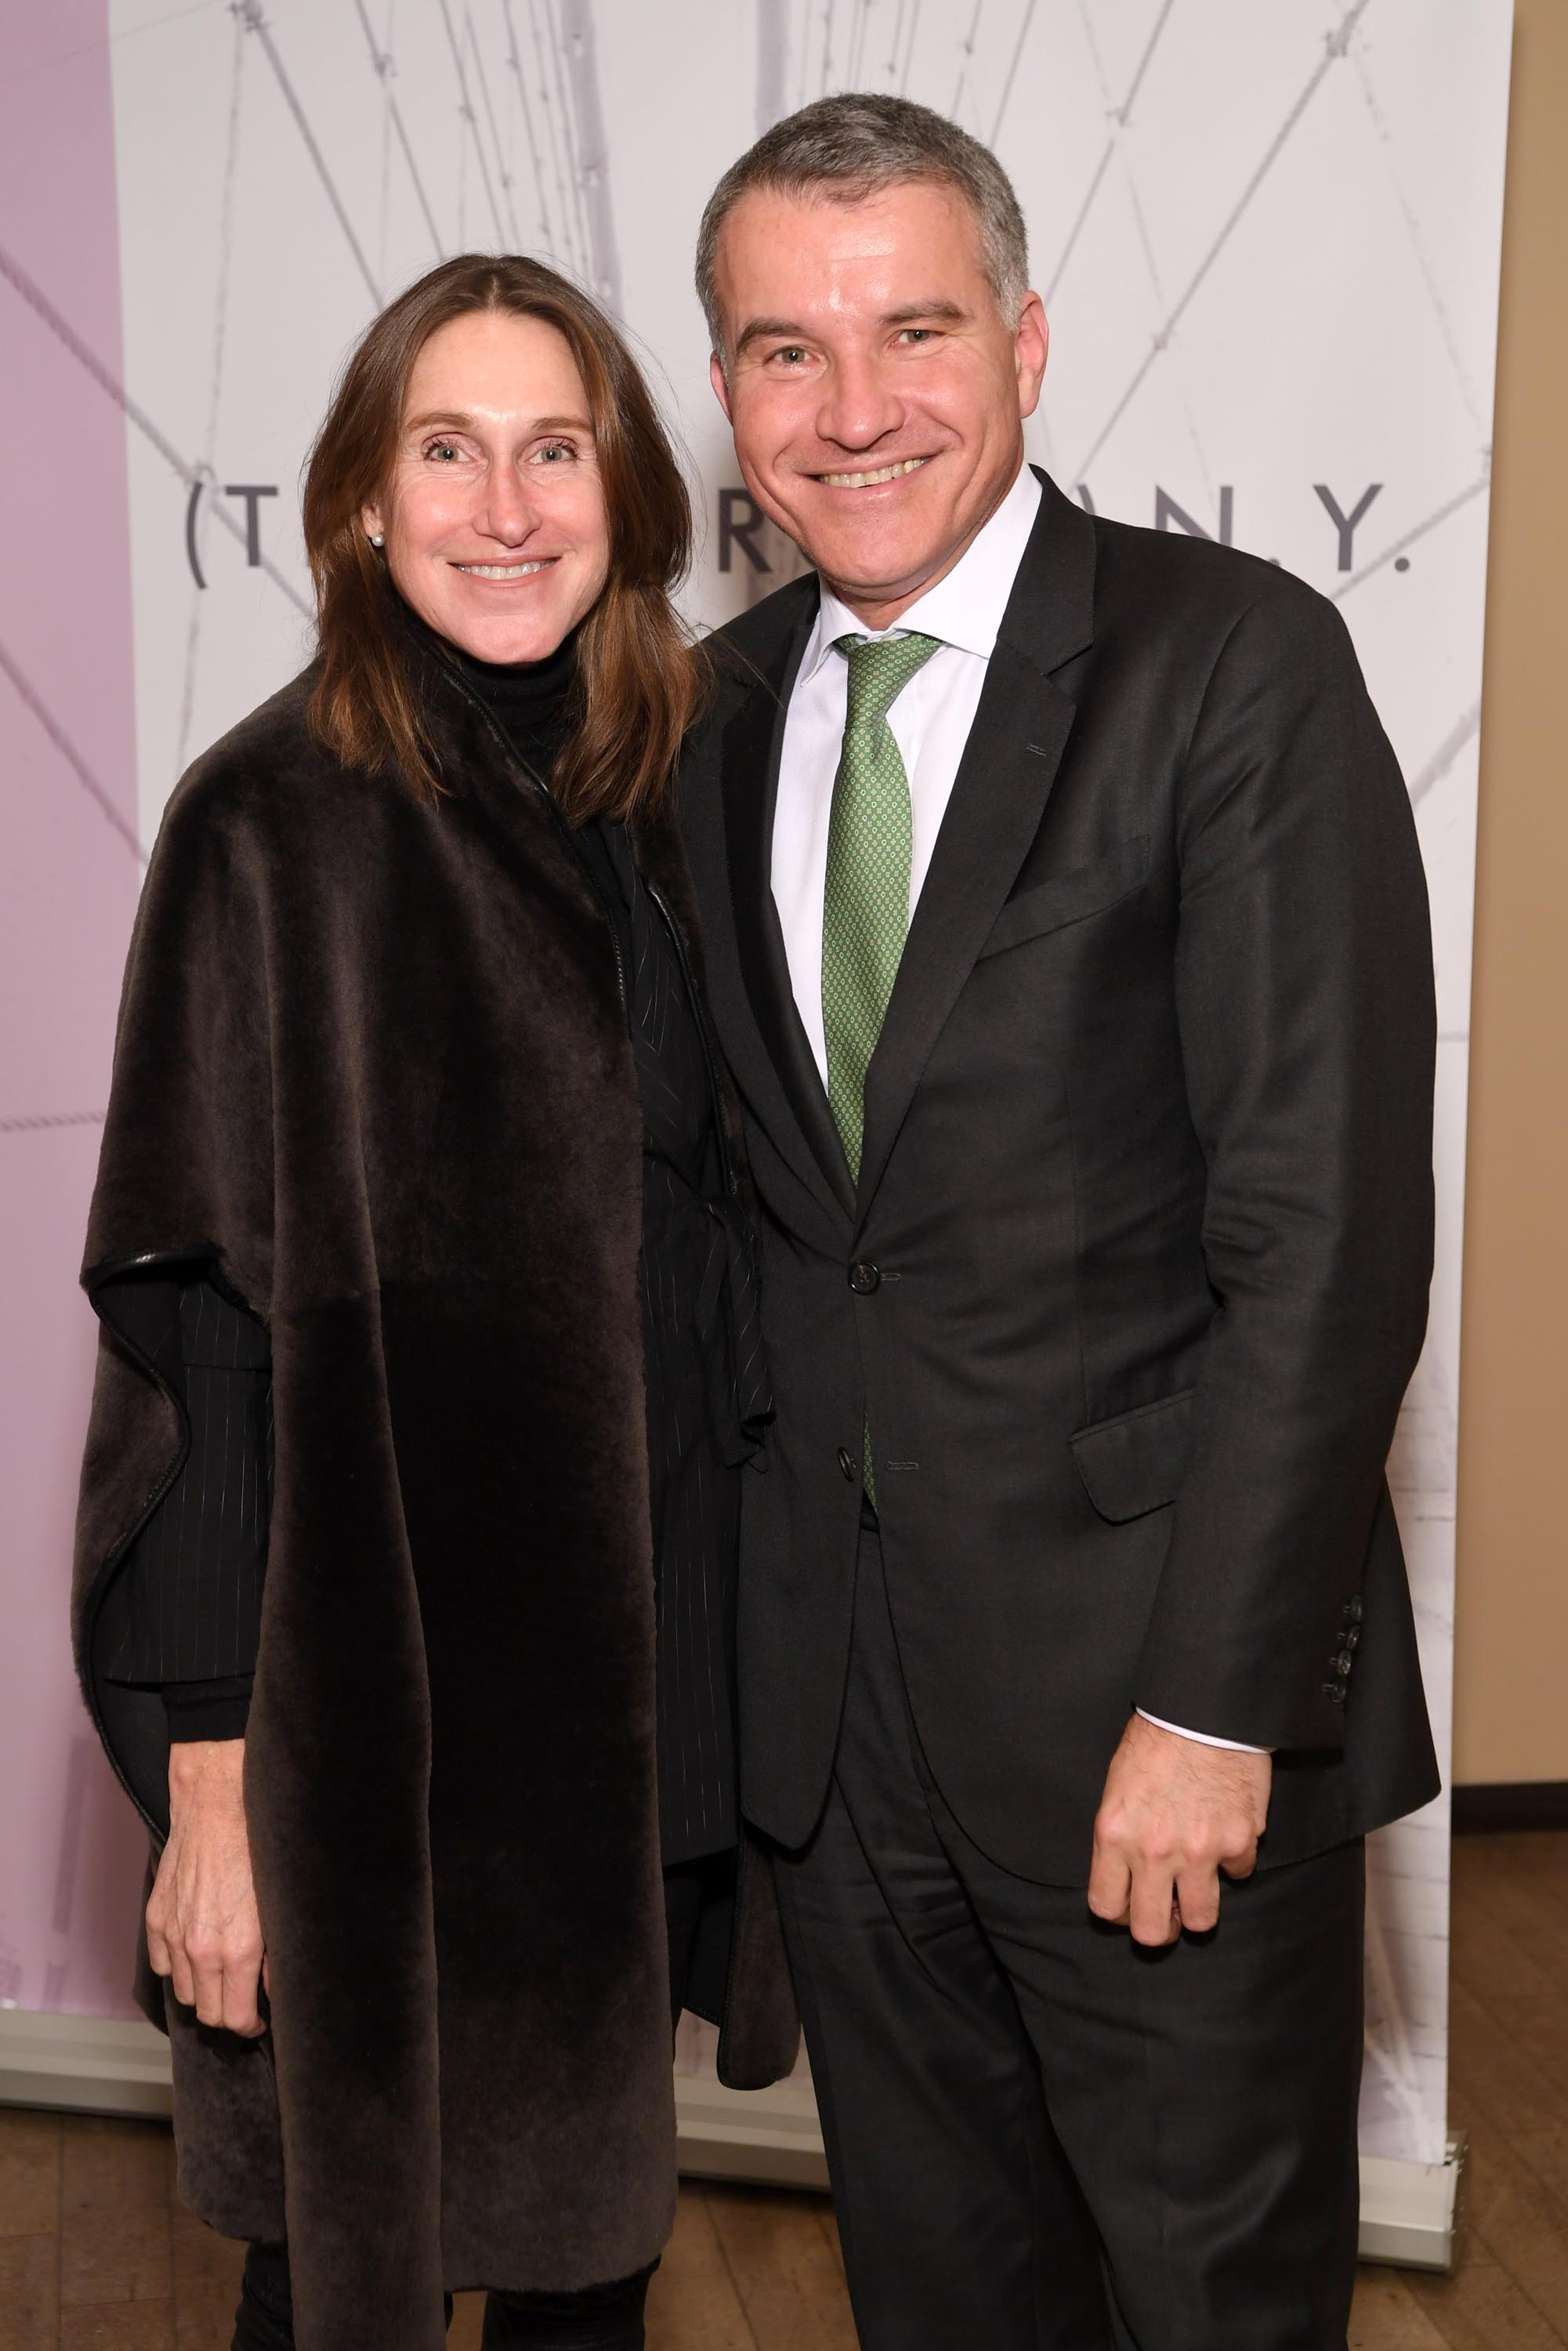 Annette Weber attends NY Empfang